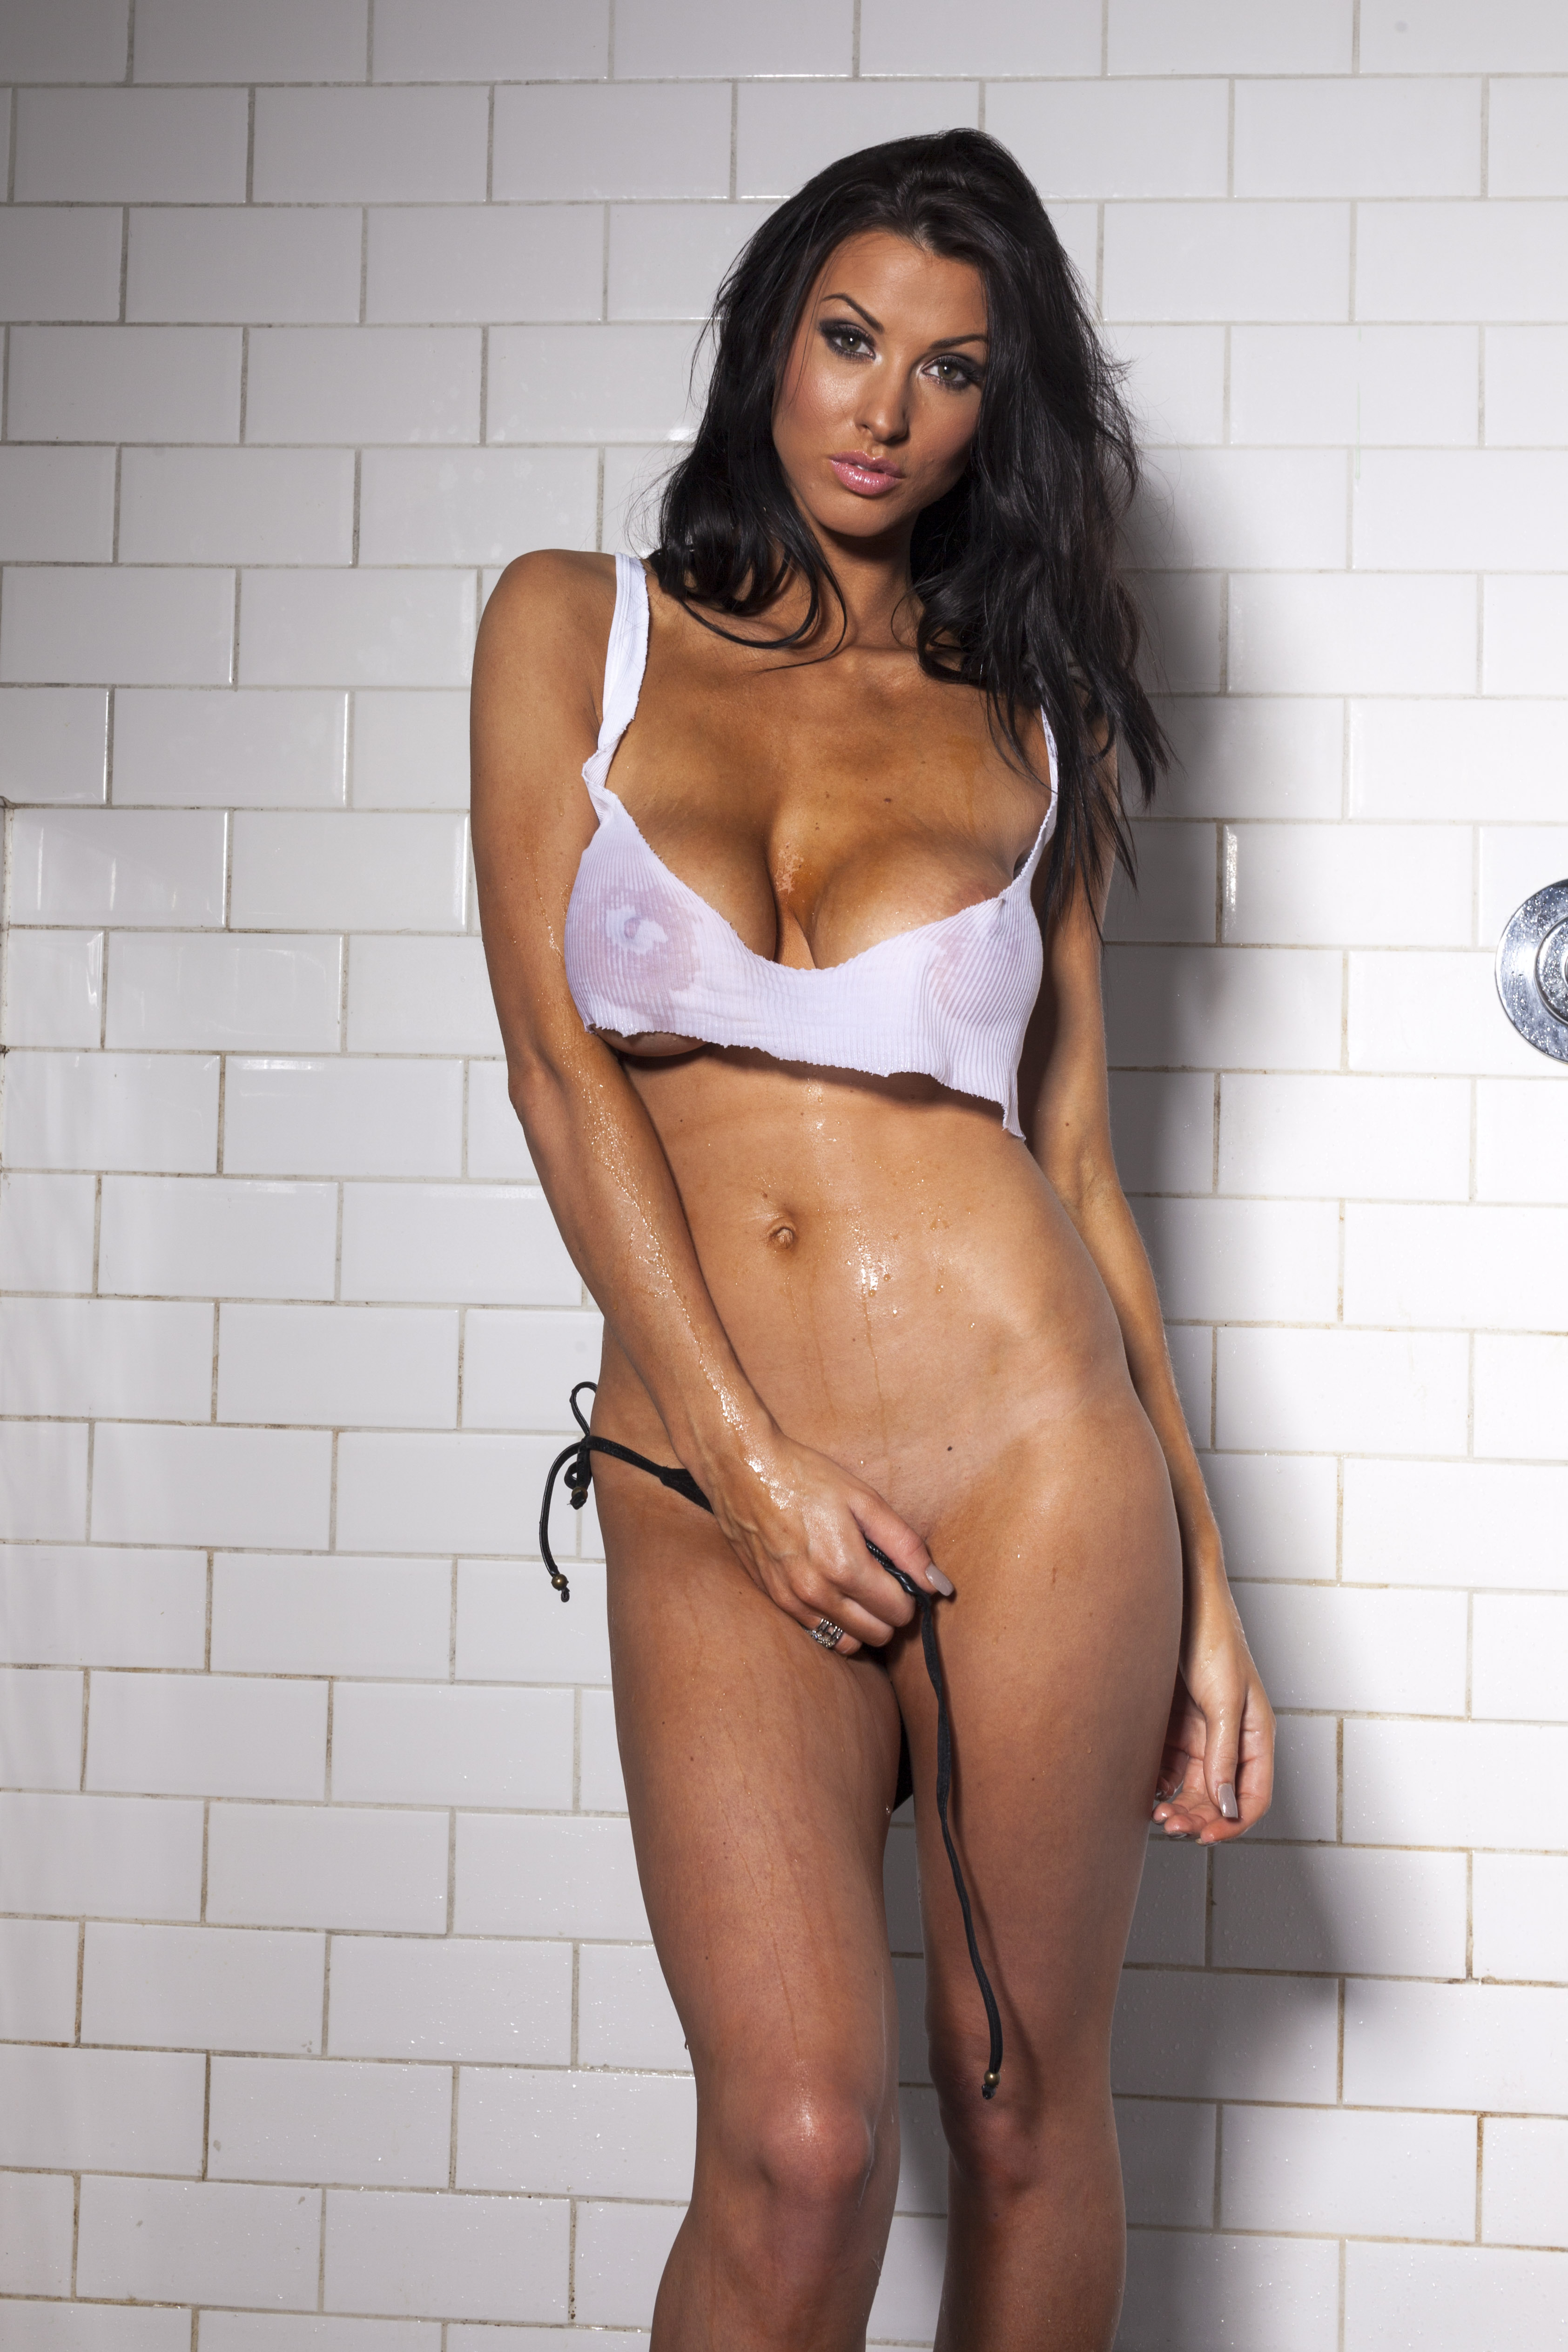 Alice Goodwin By Harry Pseftoudis - 30.04.2012